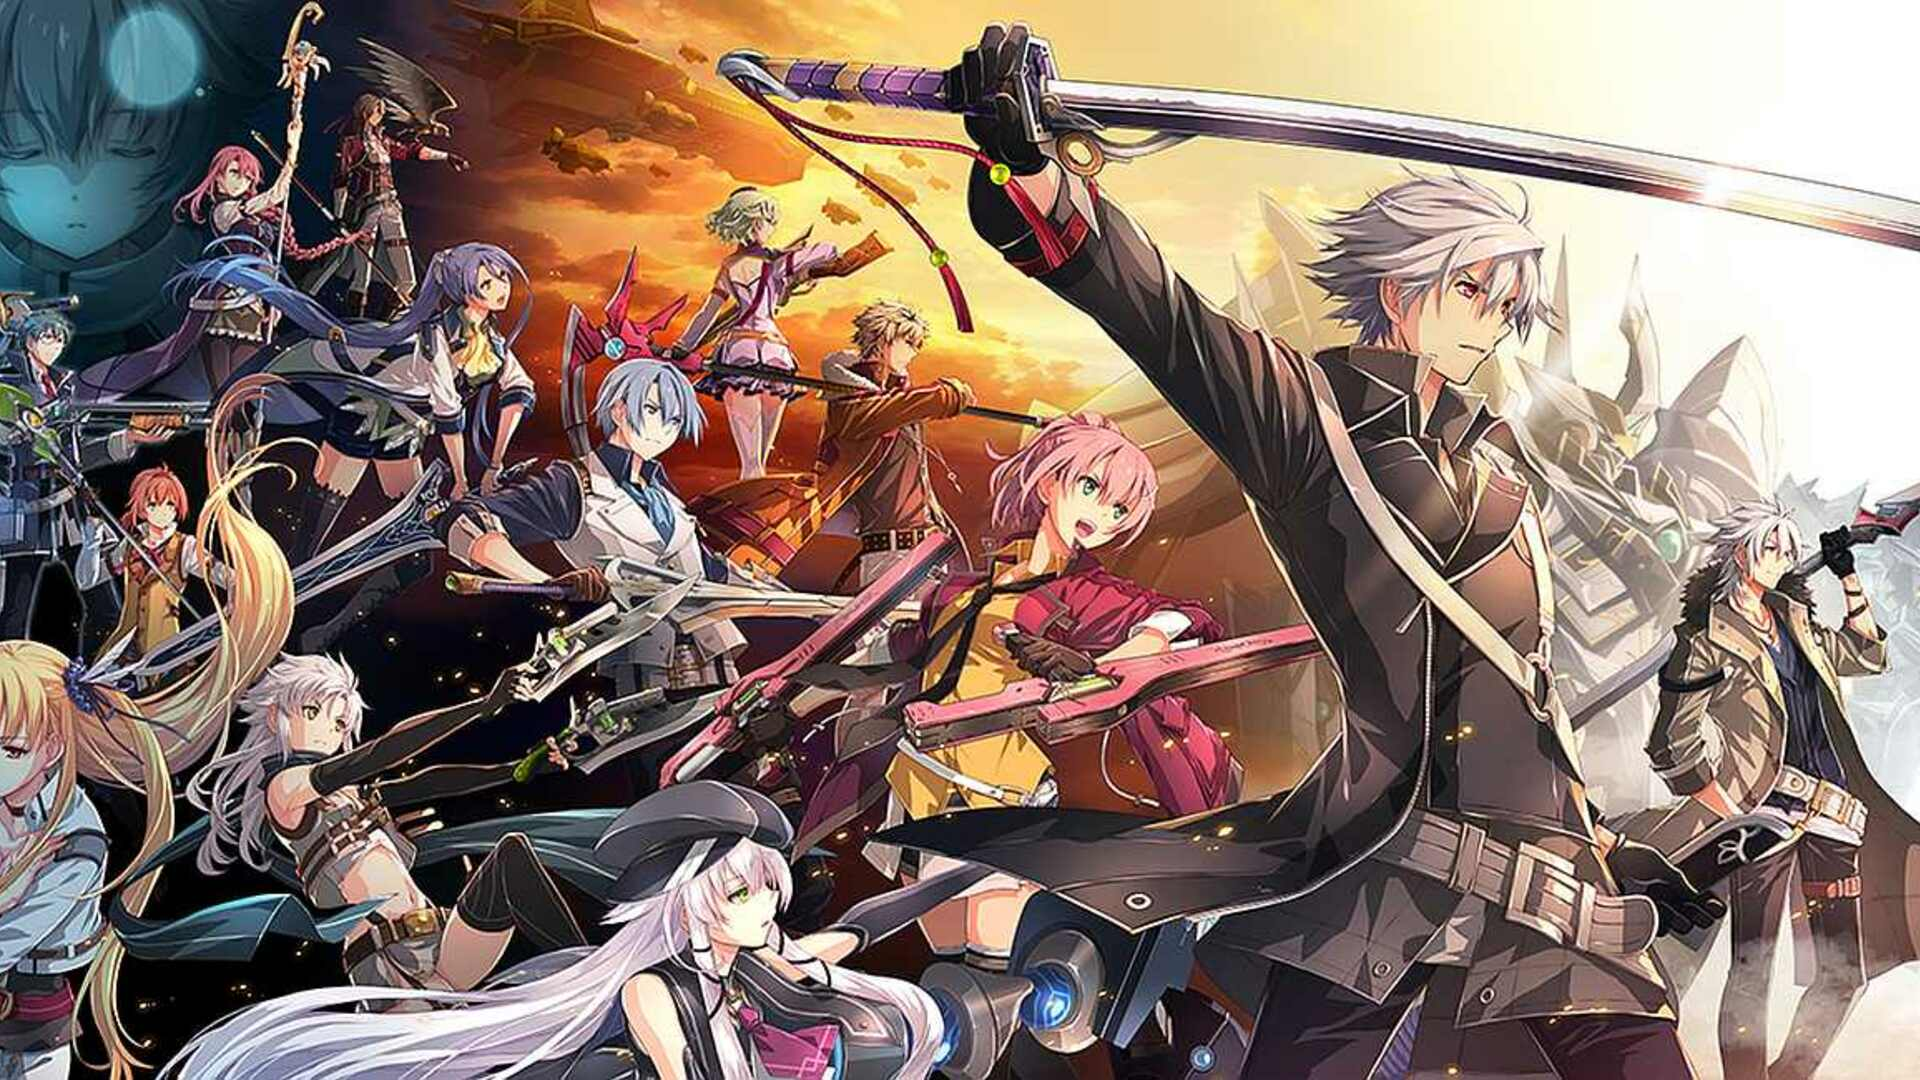 Trails of Cold Steel 4 Is Out Today, But Don't Start Your Journey With It